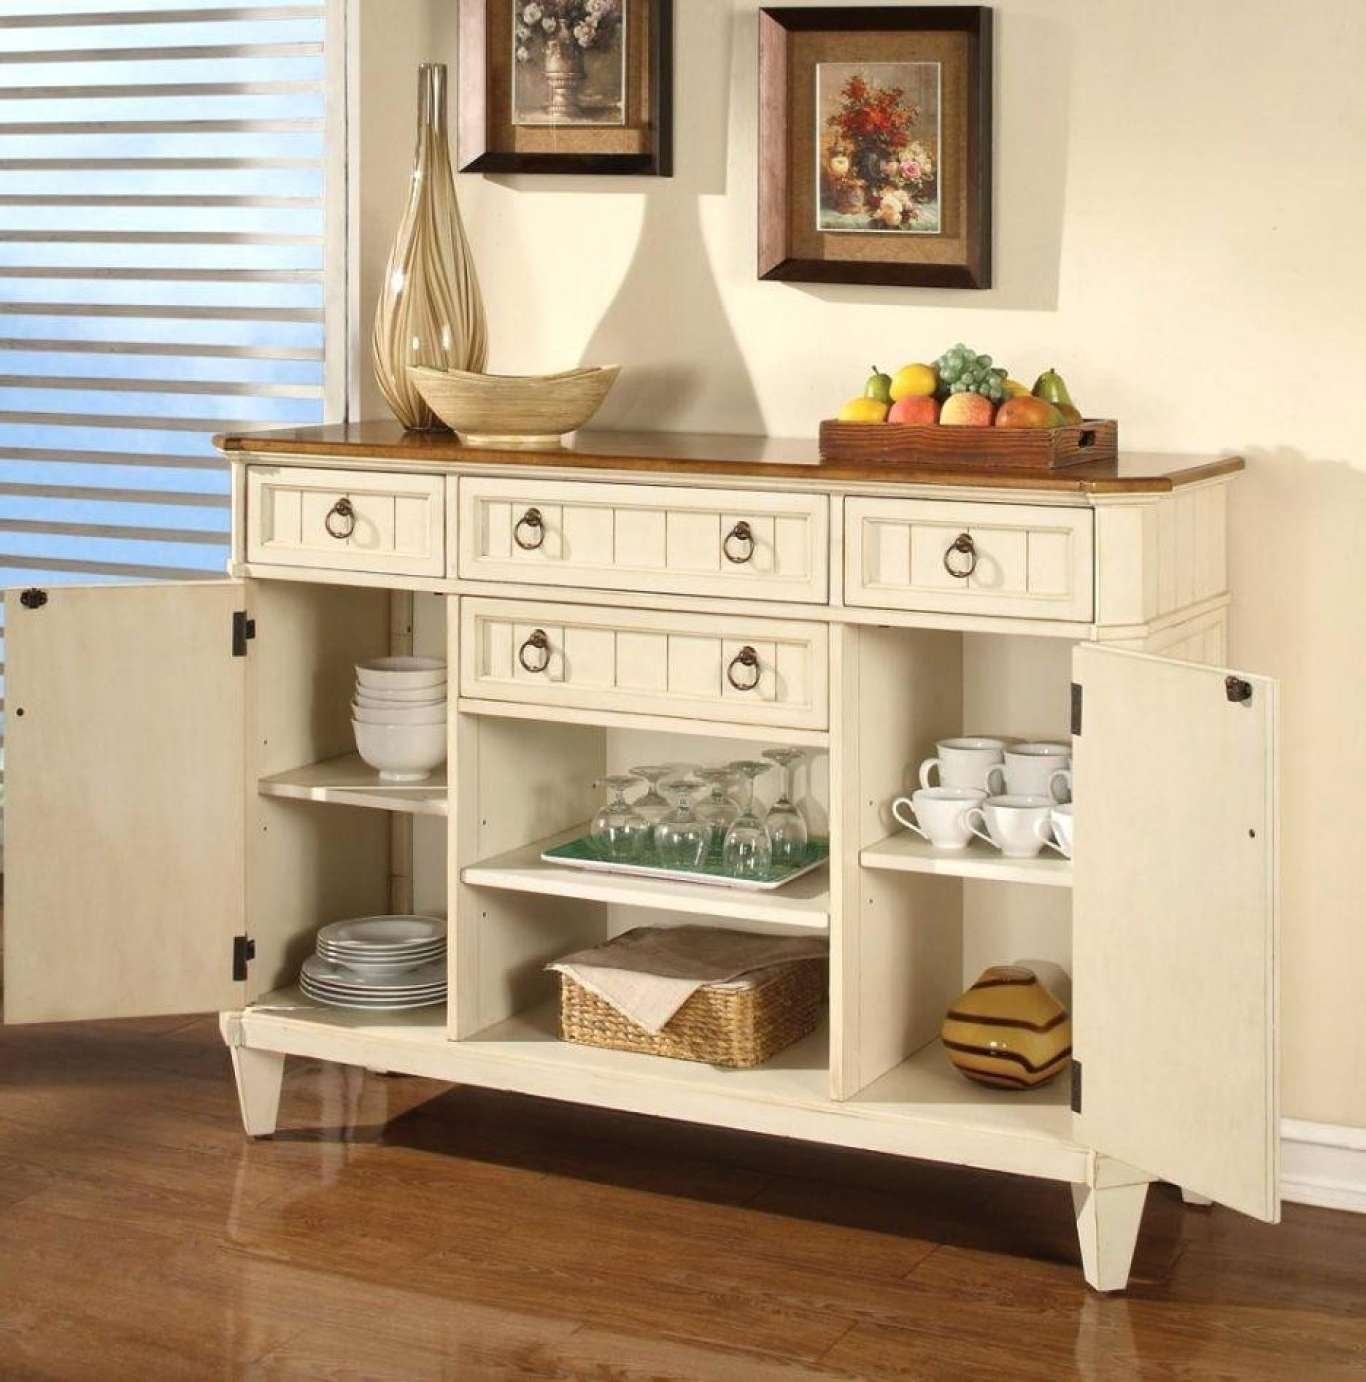 Terrific Dining Room Side Table Buffet Photos – Best Image Engine With Overstock Sideboards (View 9 of 20)